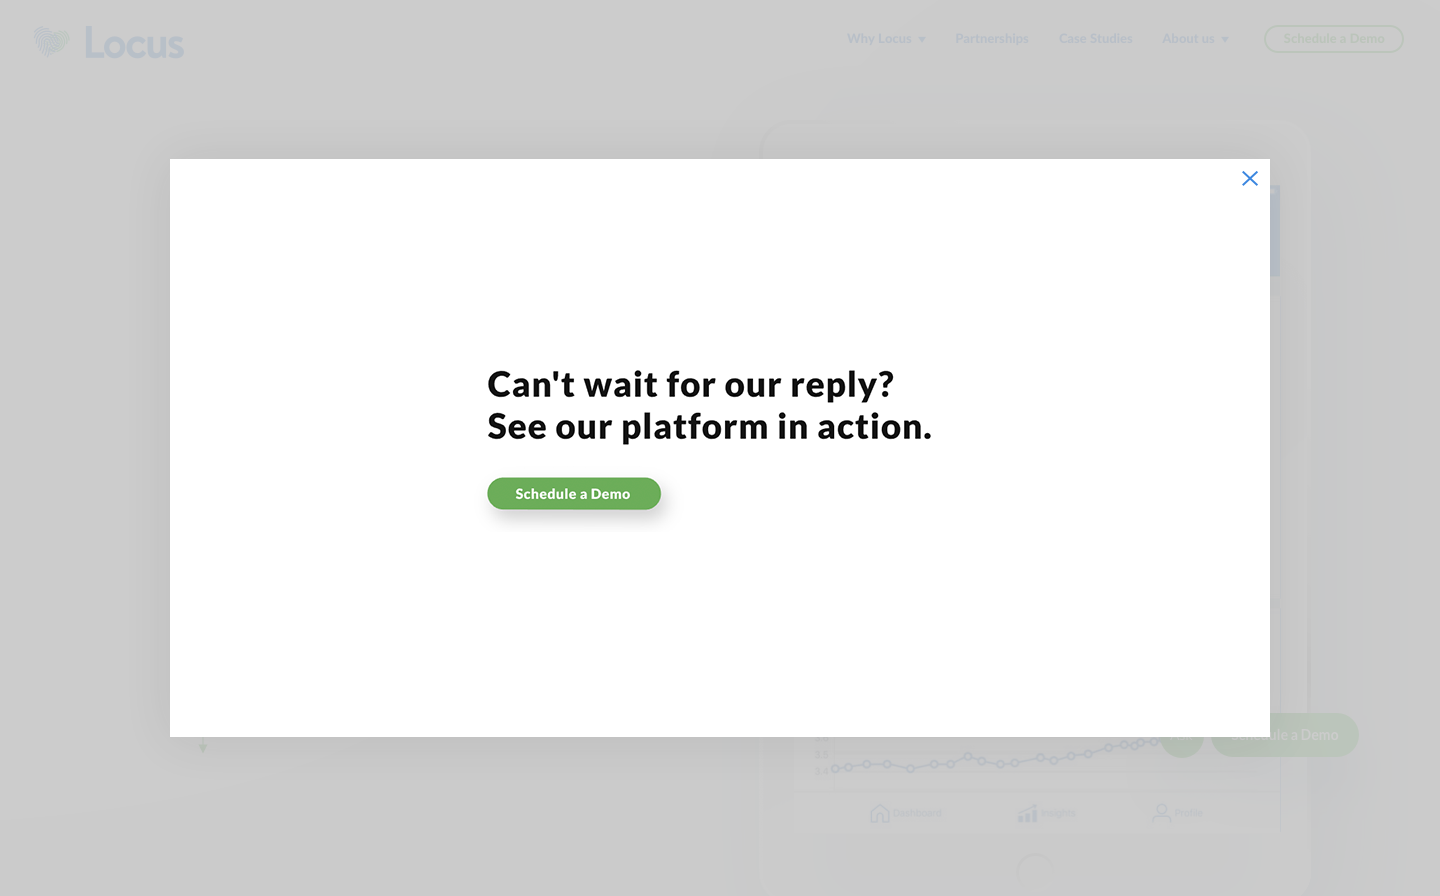 Success message pushing users to schedule a demo.